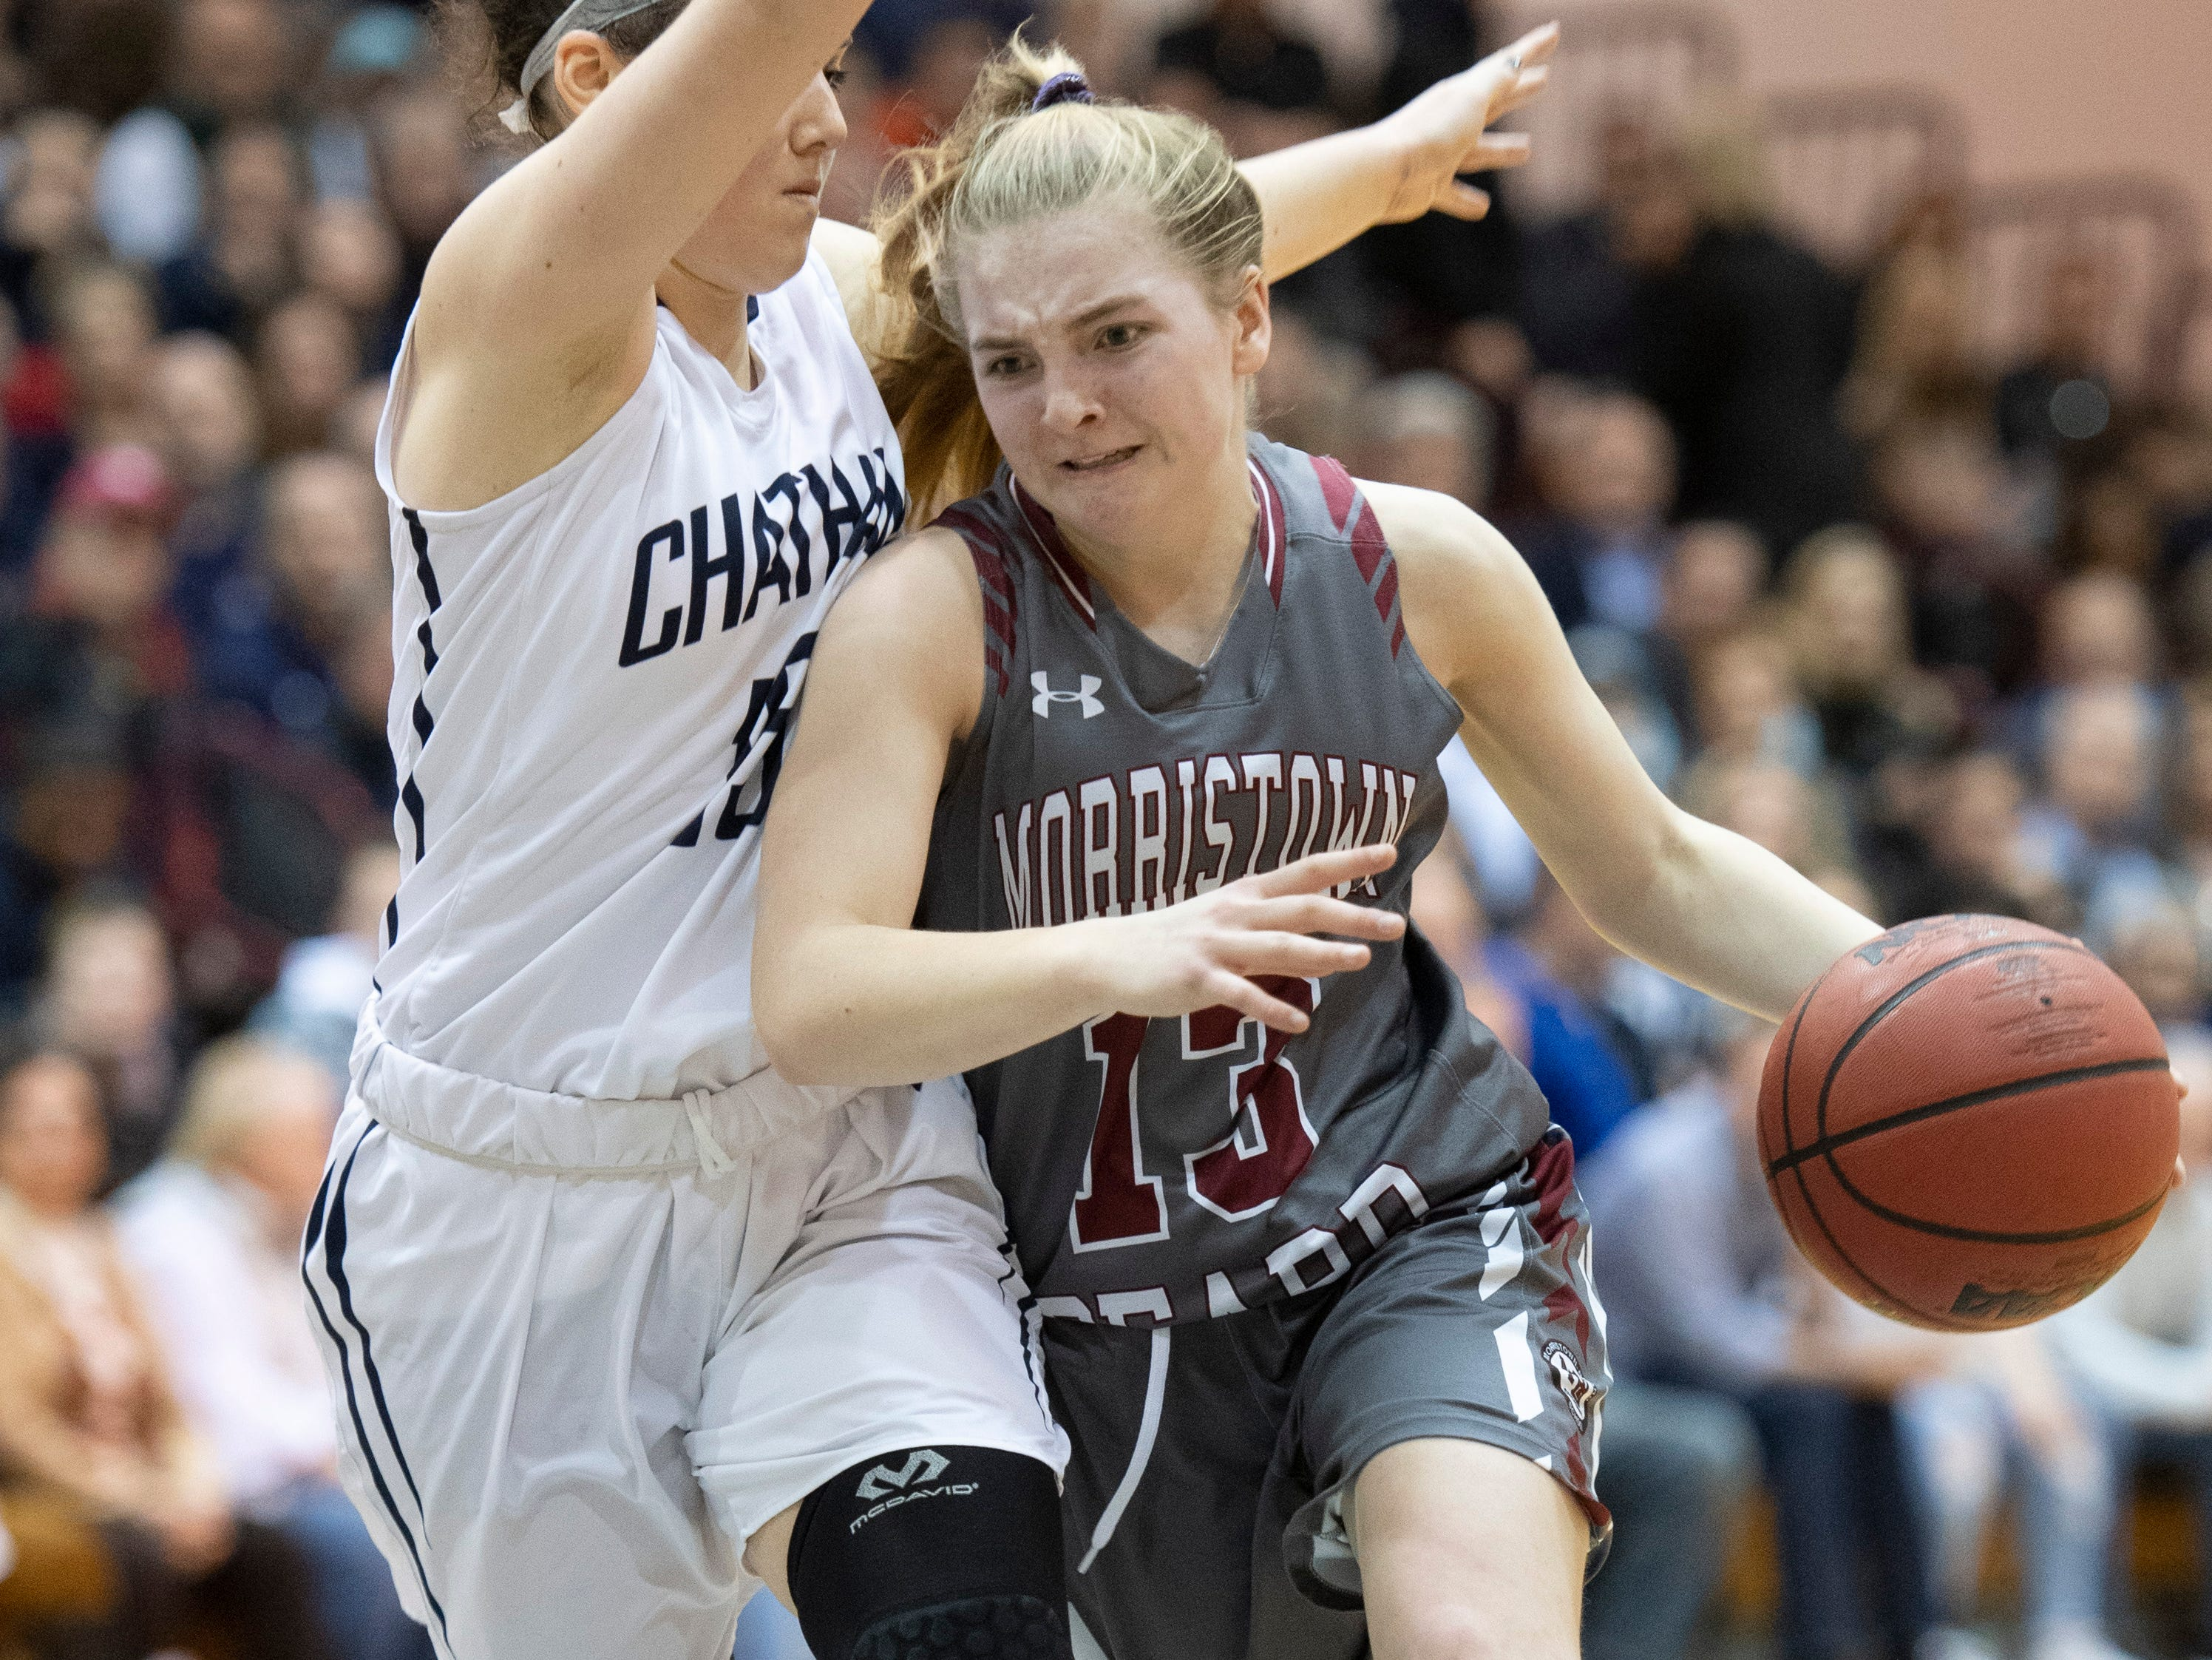 Chatham vs. Morristown-Beard in the Morris County Tournament girls basketball final at the County College of Morris in Randolph on Friday, February 22, 2019. MB #13 Olivia Omelczuk drives to the basket as C #15 Tess Ford defends.